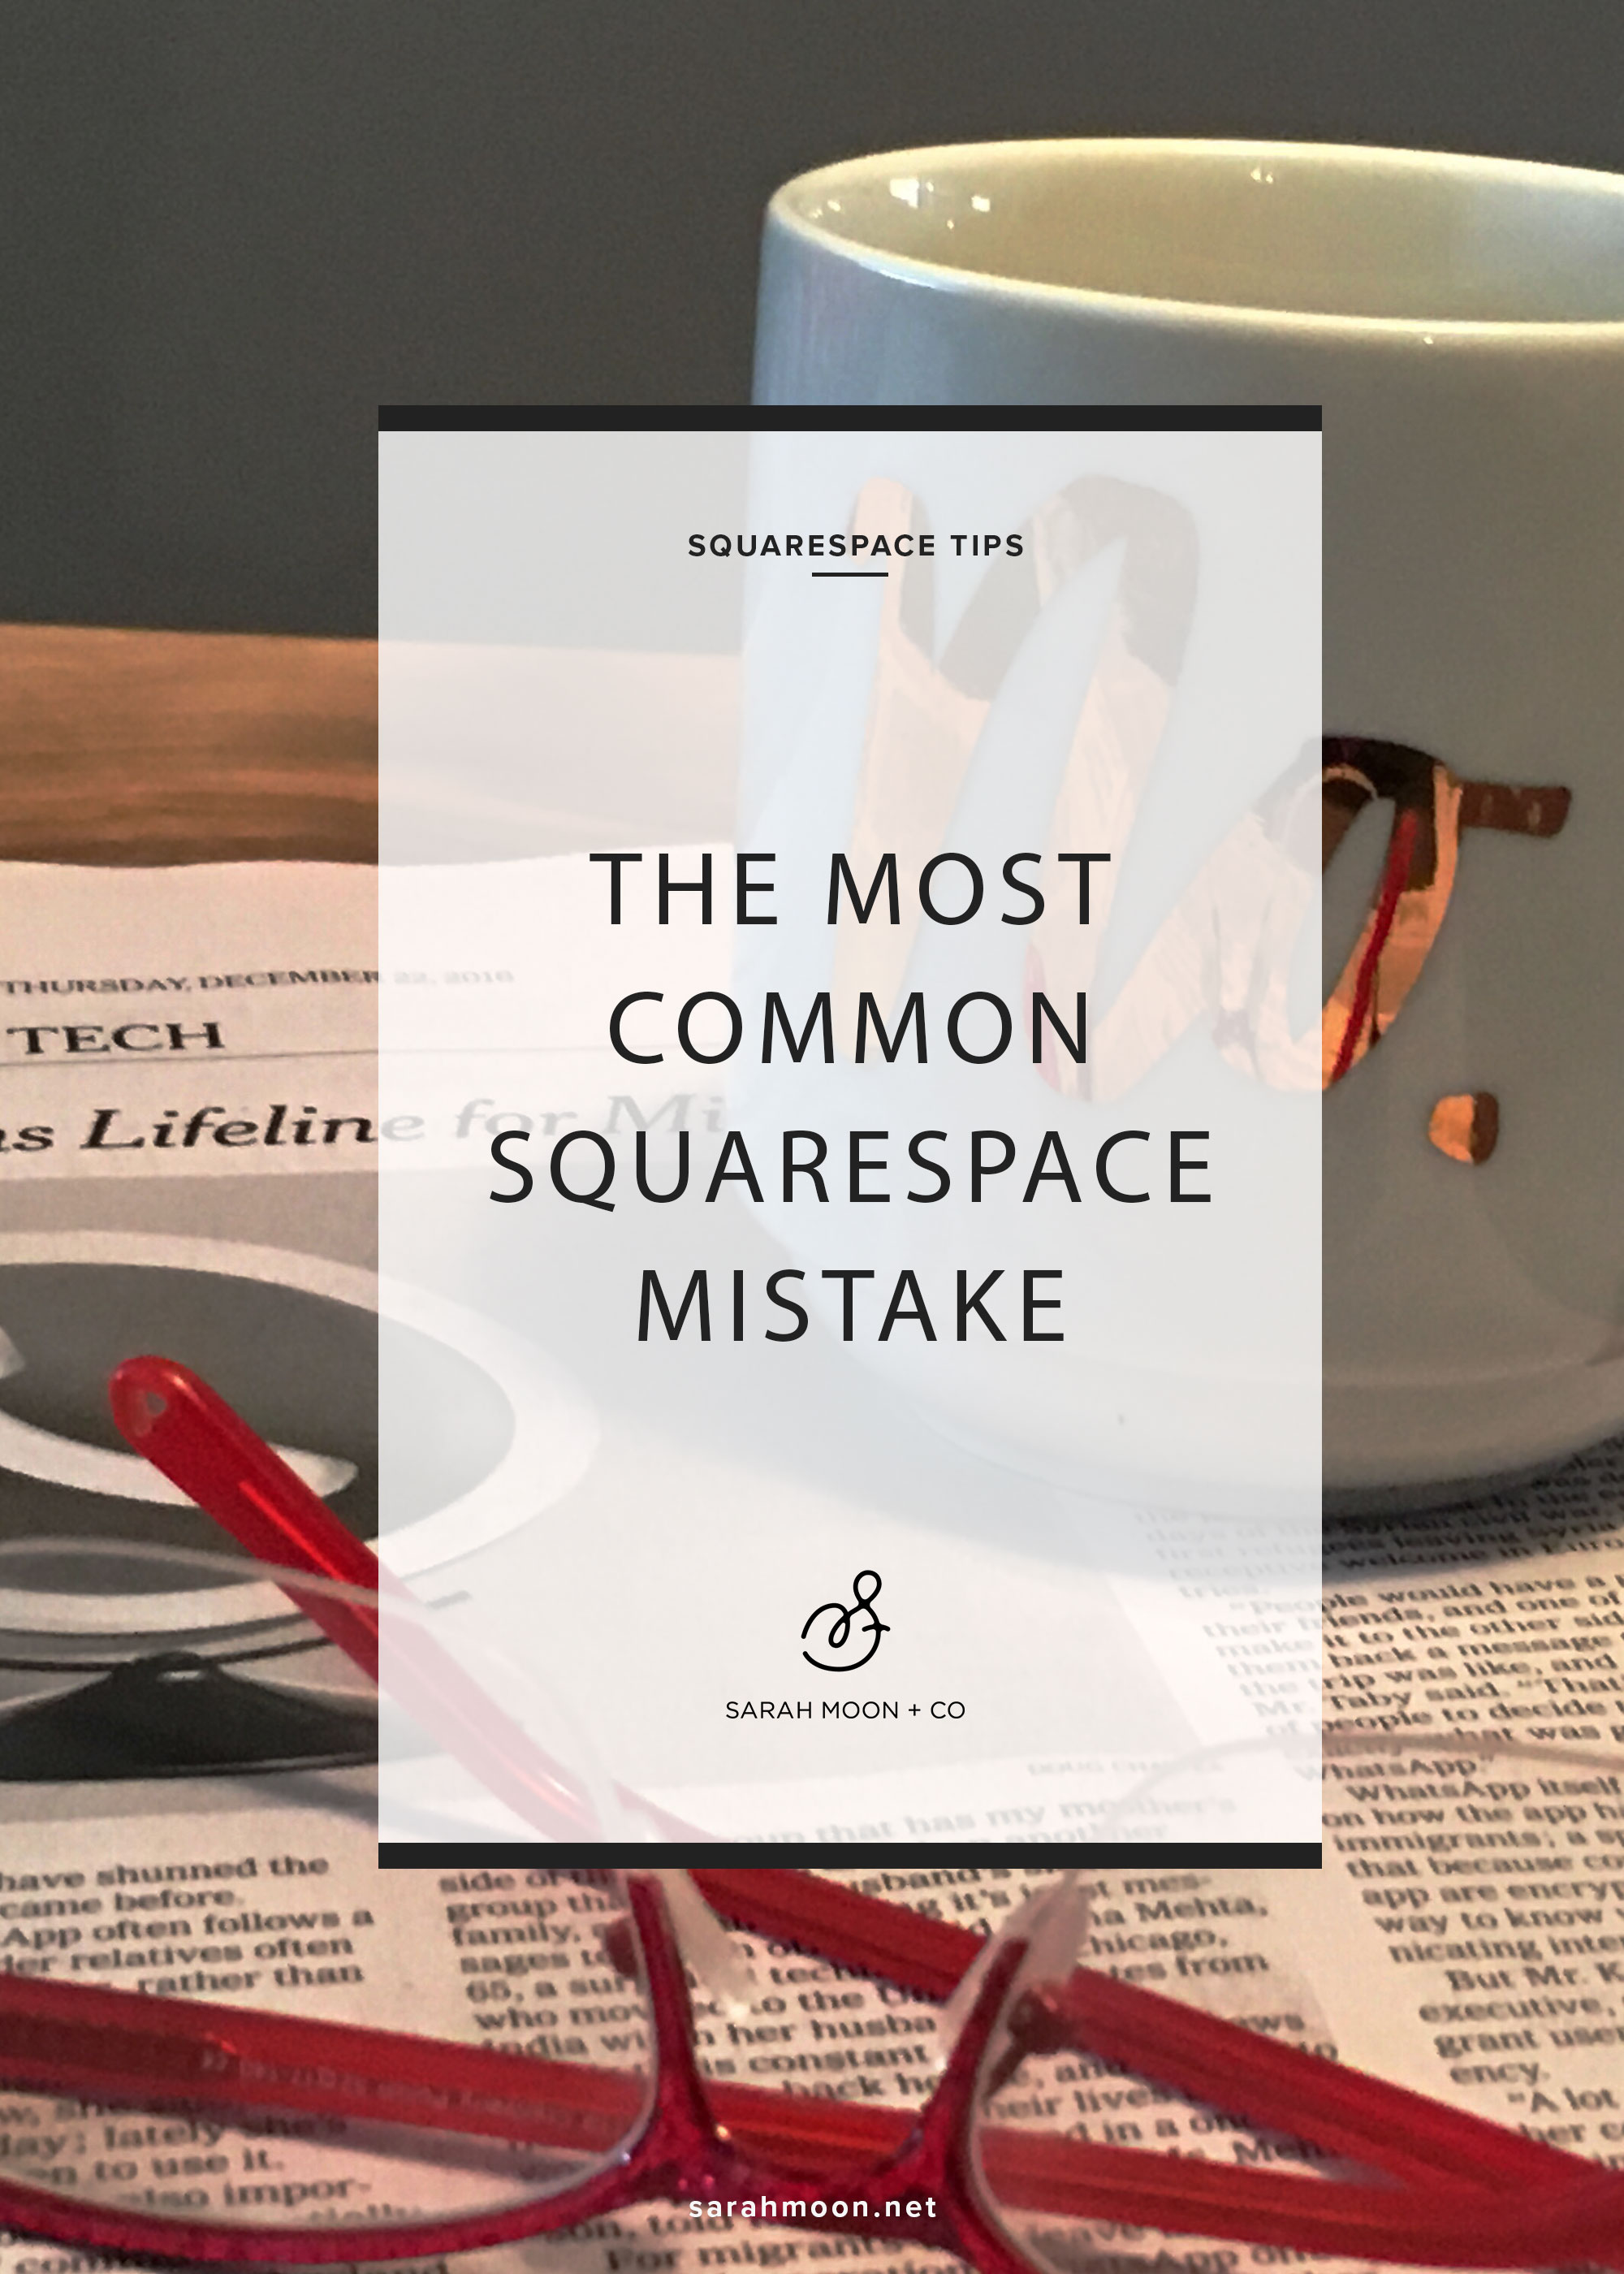 The most common Squarespace mistake. Sarah Moon + Co